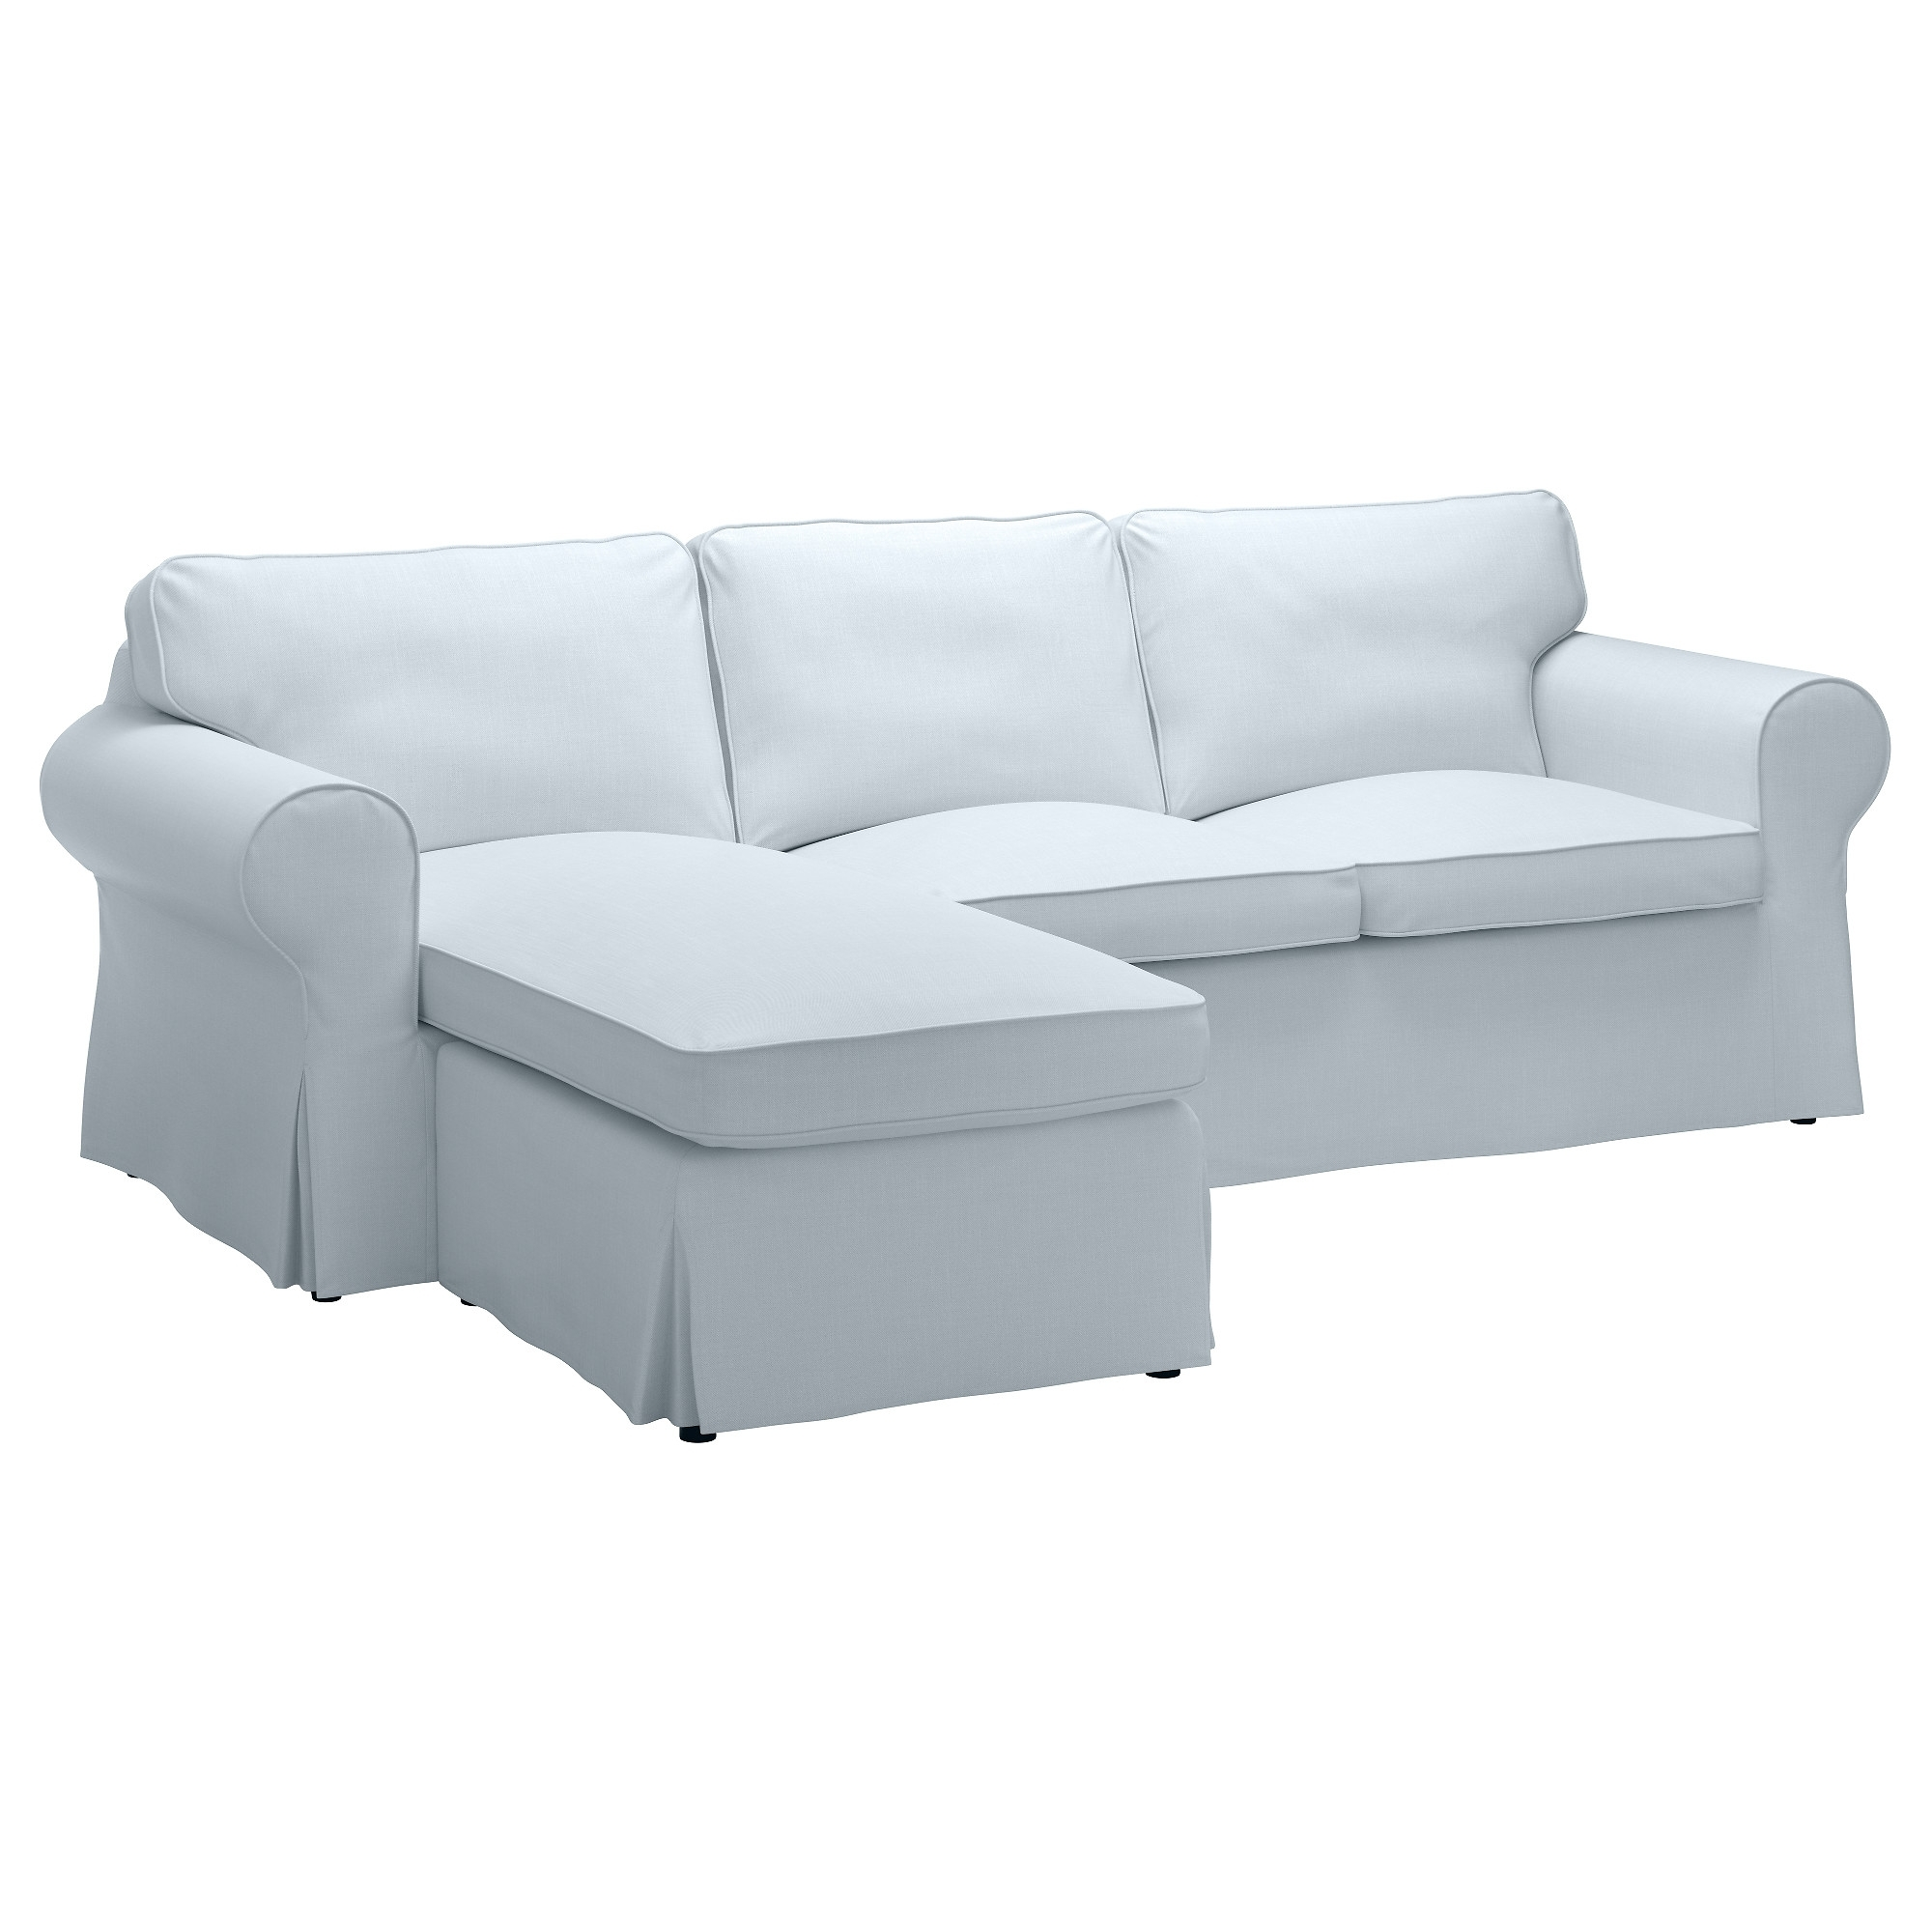 Best And Newest Small Sectional Sofa Ikea 80 With Small Sectional Sofa Ikea Within Sectional Sofas At Ikea (View 7 of 20)